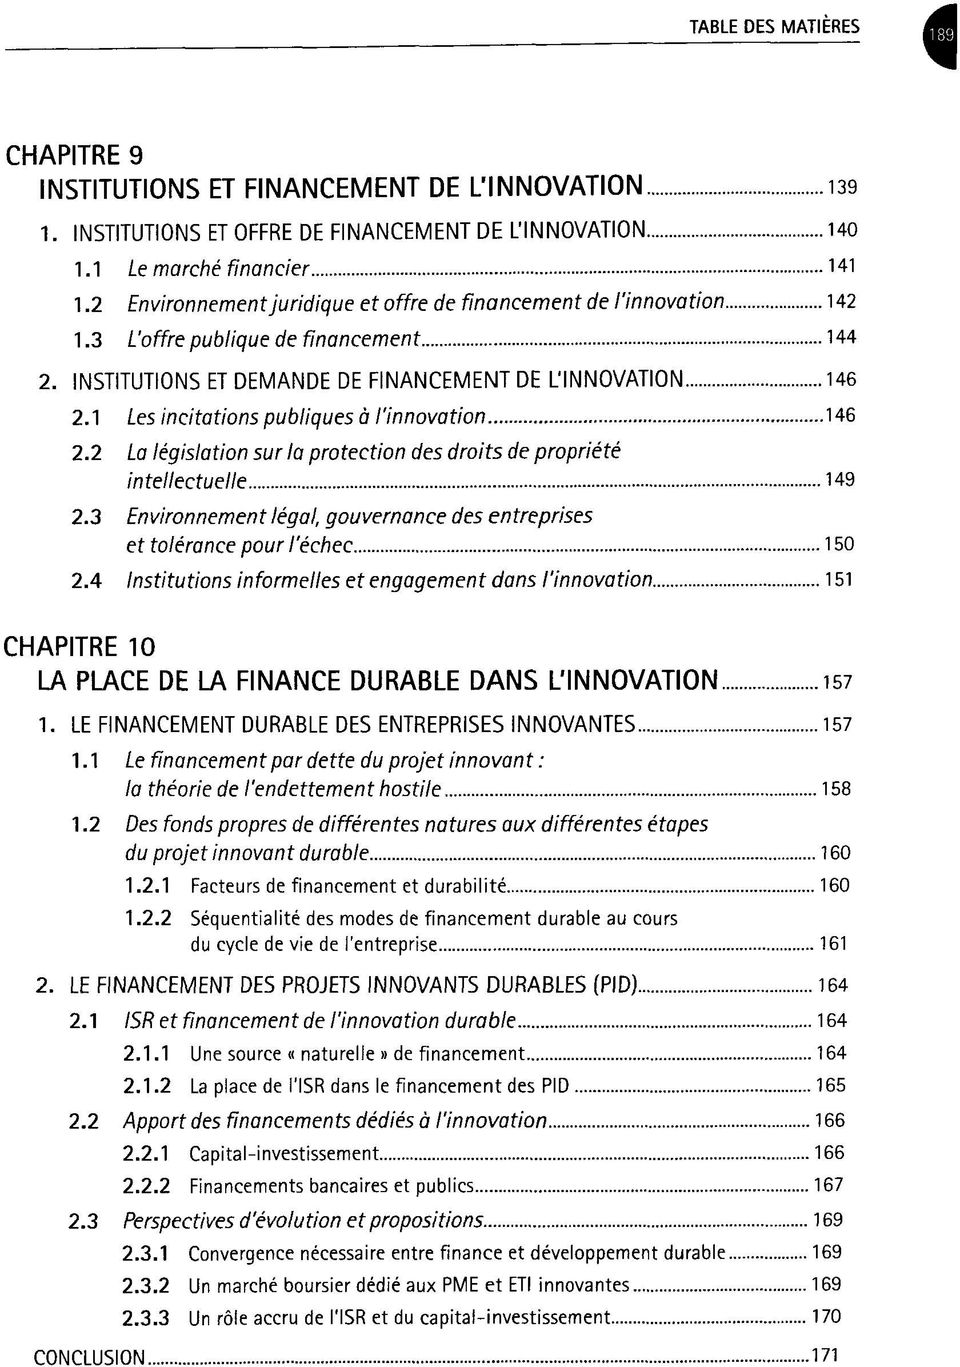 1 Les incitations publiques ä l'innovation 146 2.2 La legislation sur la protection des droits de propriete intellectuelle 149 2.